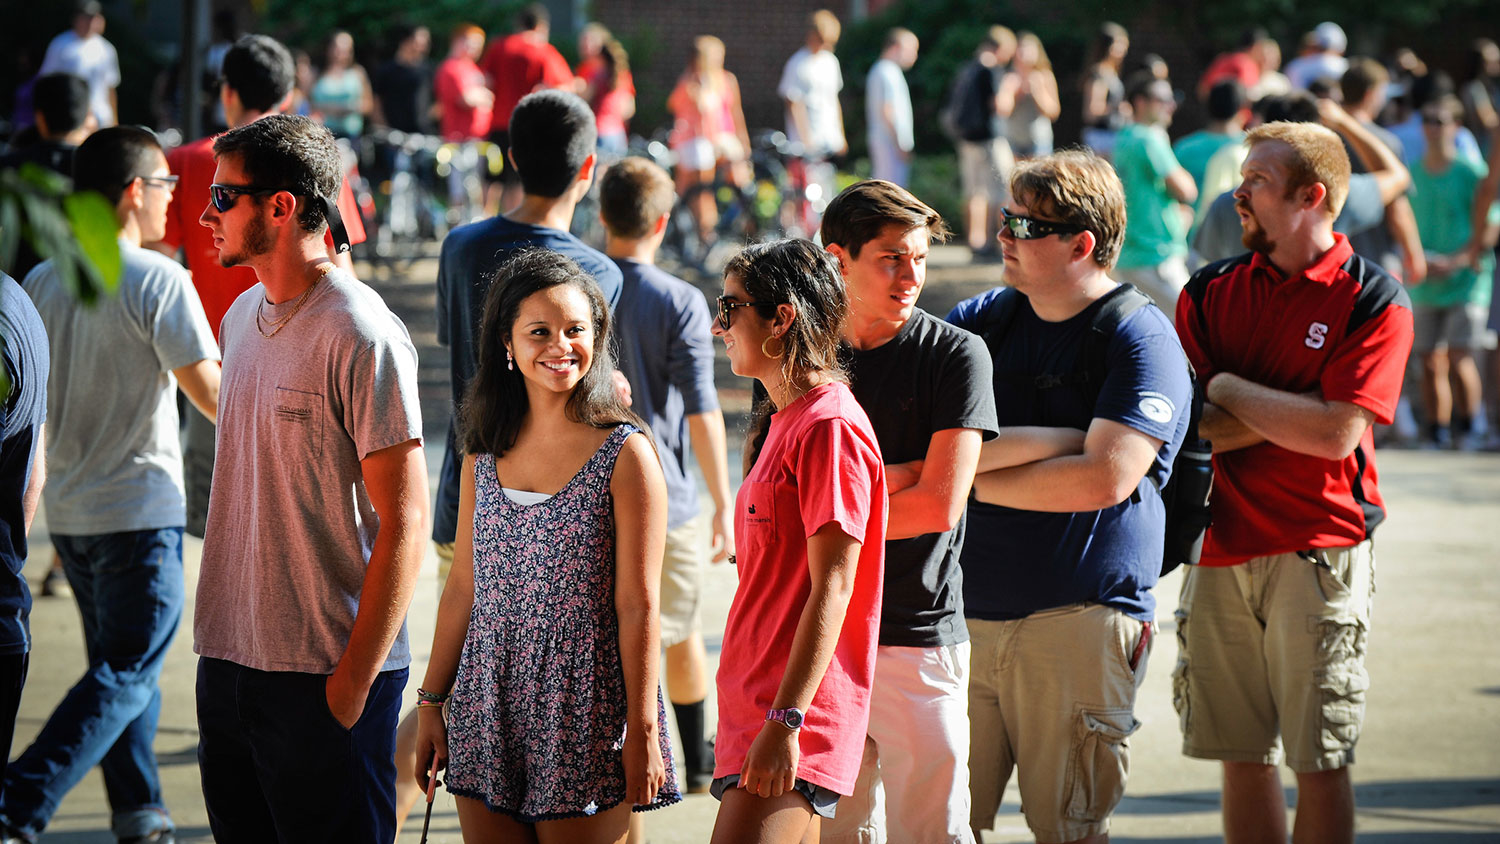 Students waiting in line